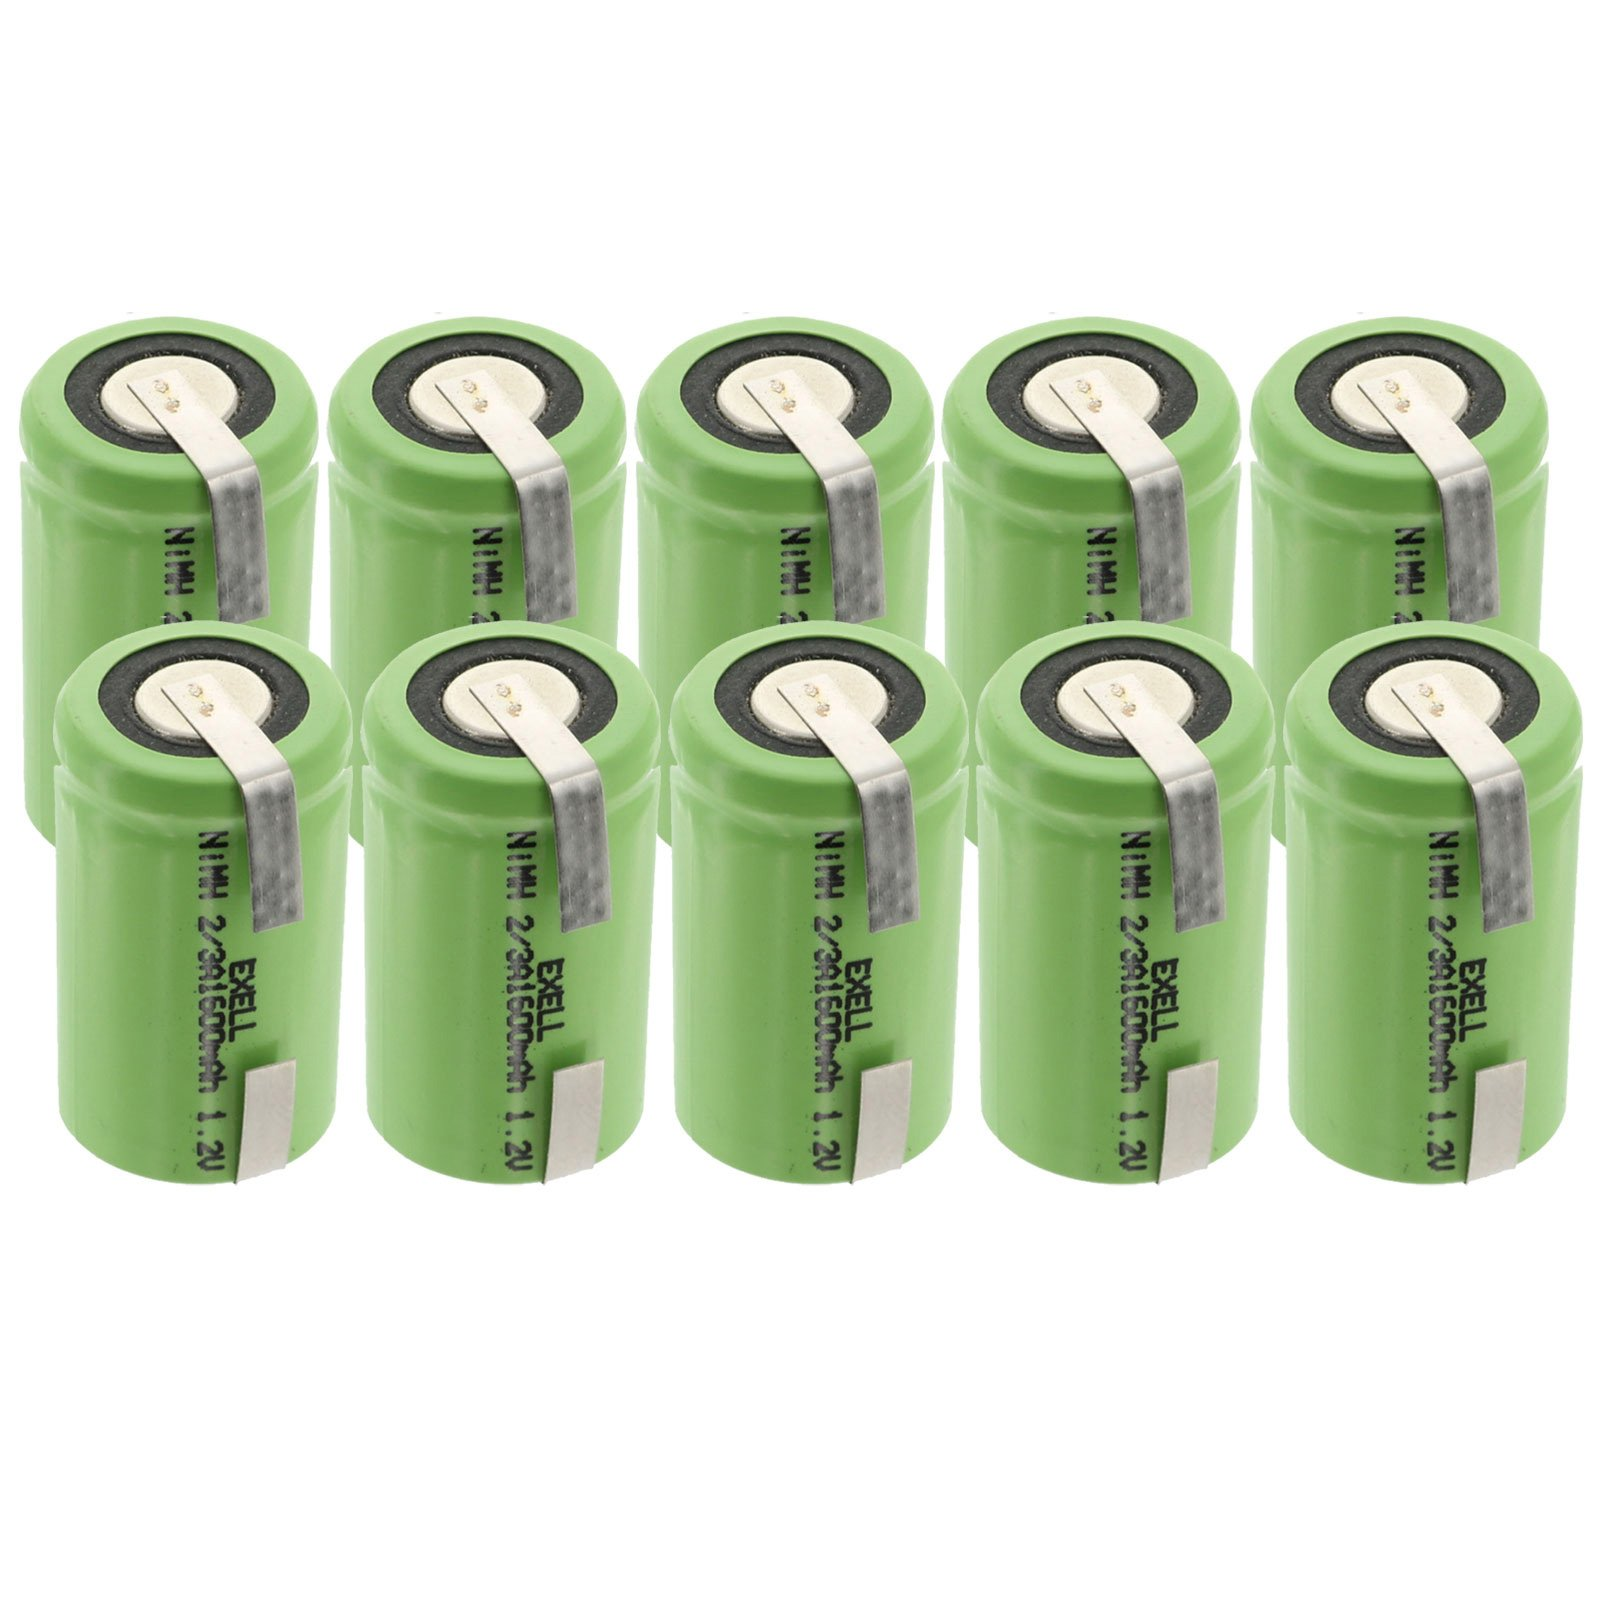 10x Exell 2/3A Size 1.2V 1100mAh NiMH Rechargeable Batteries w/Tabs use with high power static applications (Telecoms UPS and Smart grid) radio controlled devices electric tools electric mopeds by Exell Battery